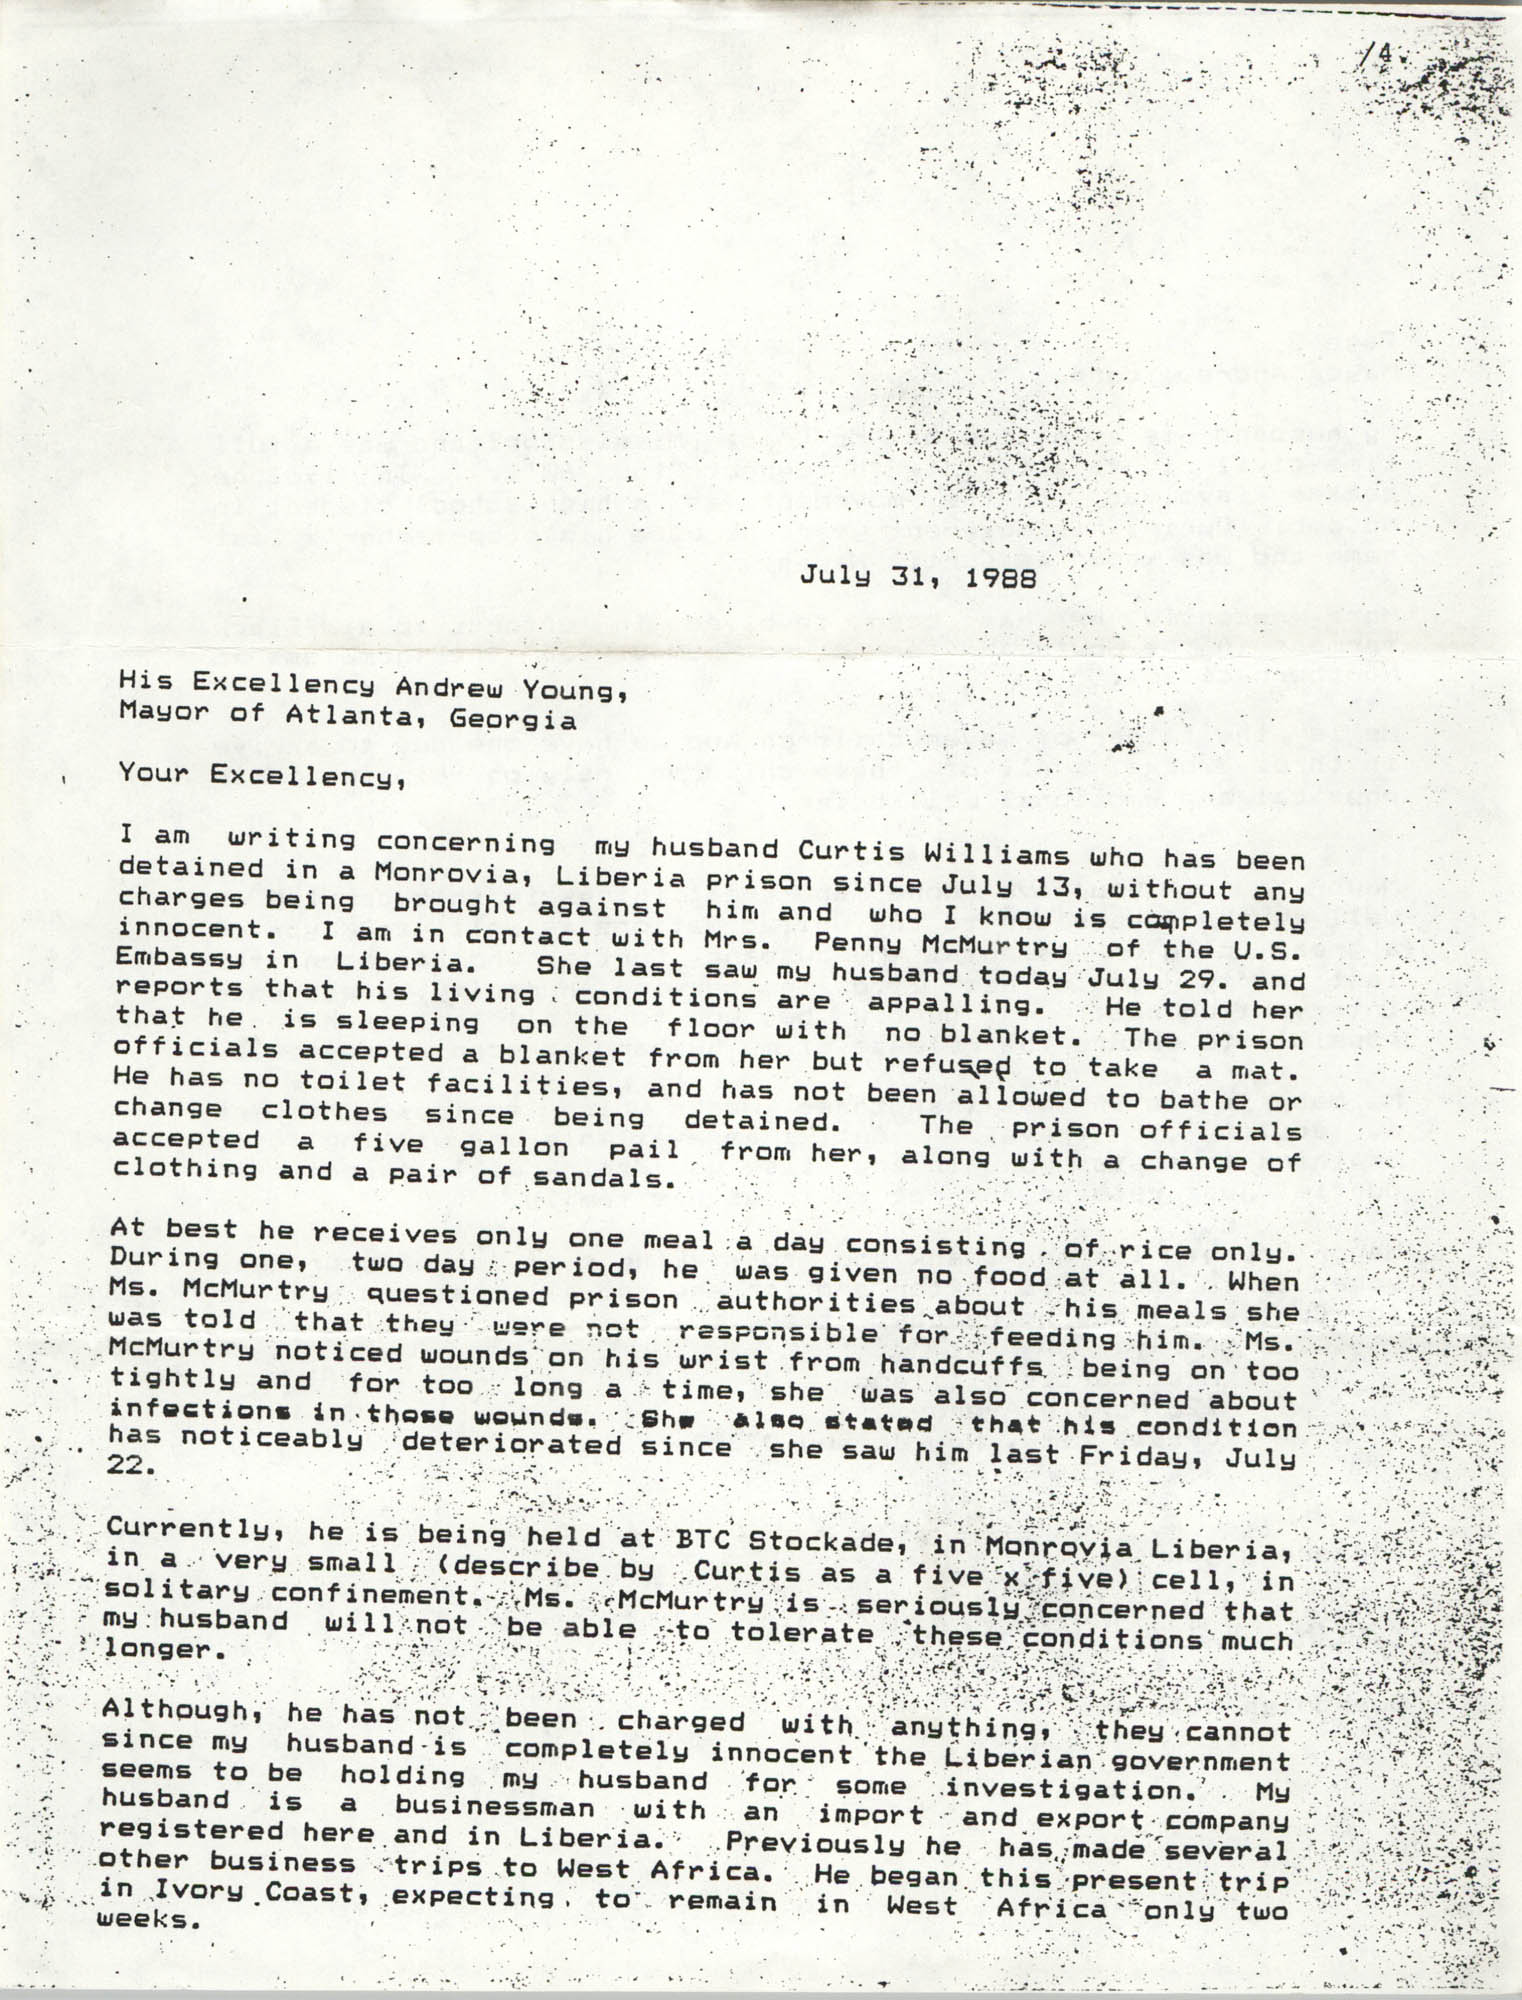 Letter from Gwendolyn Williams to Andrew Young, July 31, 1988